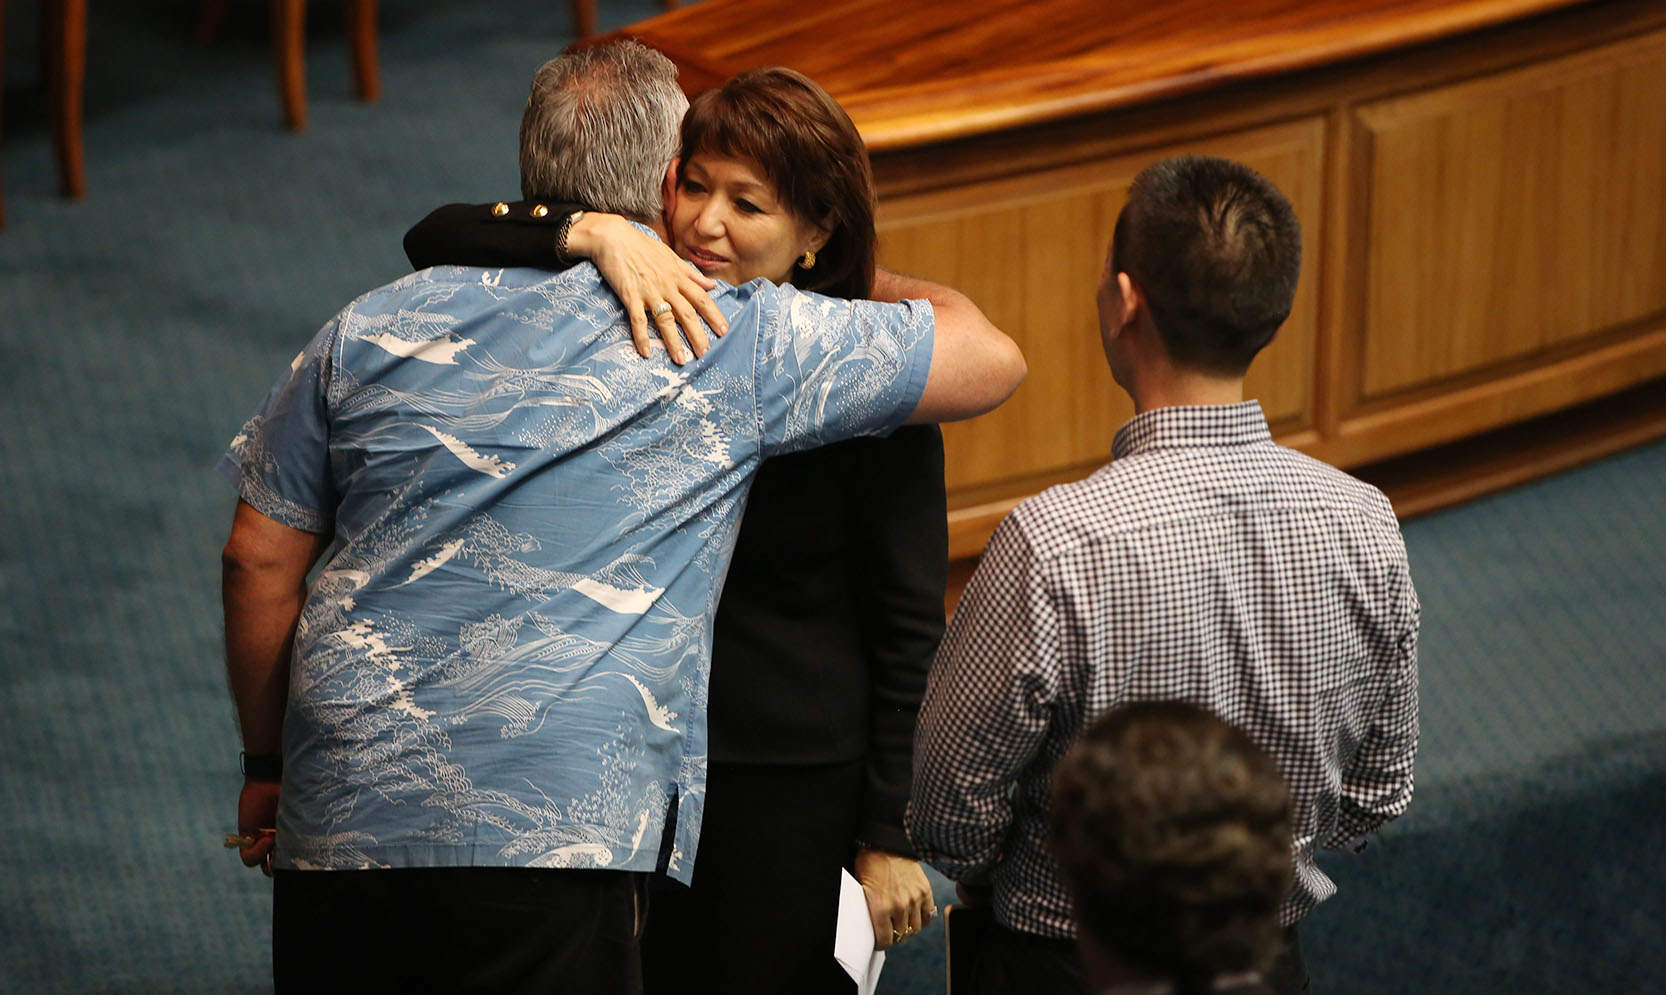 <p>Senate President Donna Mercado Kim hugs Ige's chief of staff, Mike McCartney, after he delivers a letter on the Senate floor withdrawing the nomination of Ching. Ige pushed hard for Ching, but gave up when it became apparent there weren't enough votes of support in the Legislature. In November, Ching was named director of land development for the University of Hawaii.</p>